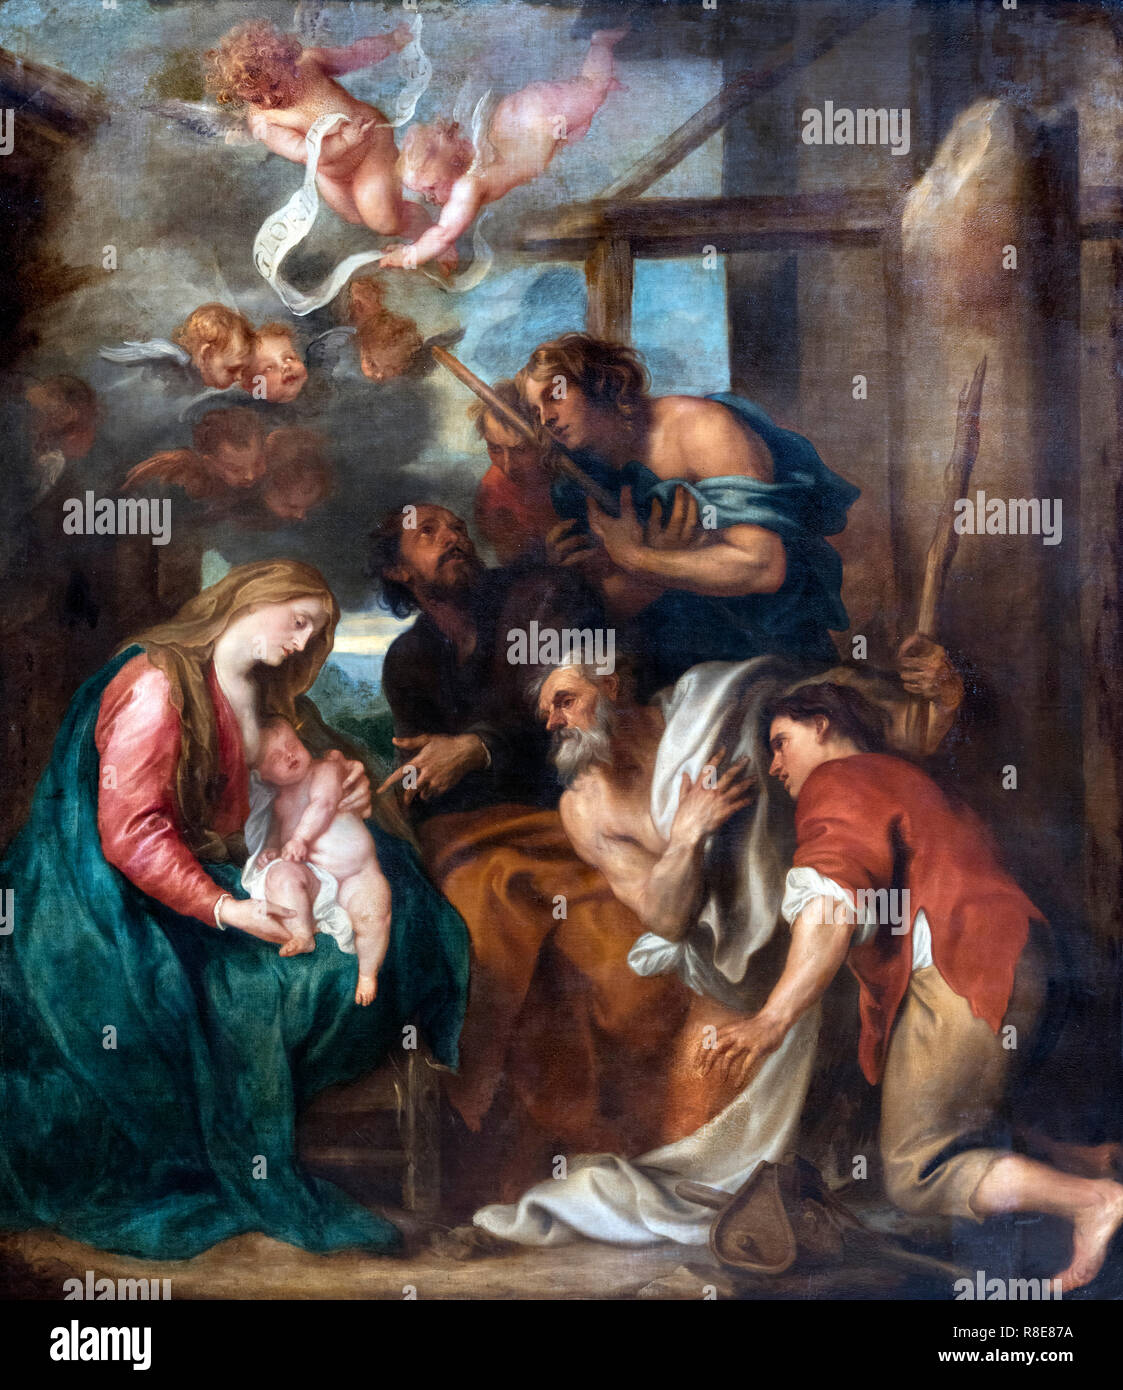 The Adoration of the Shepherds by Sir Anthony van Dyck (1599-1641), oil on canvas, c.1632 - Stock Image